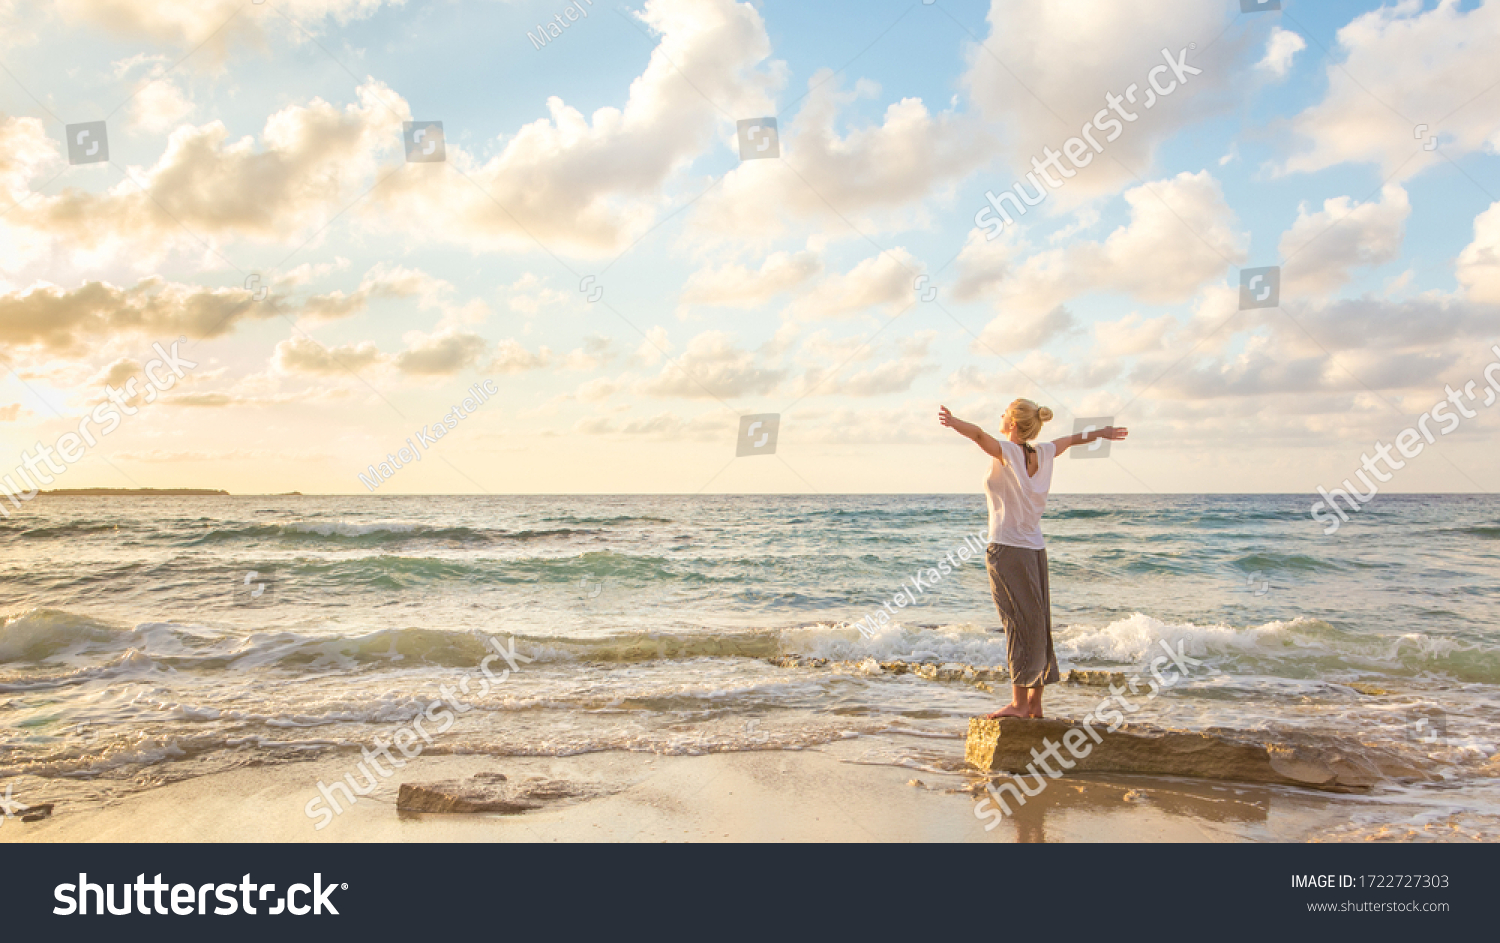 Relaxed woman enjoying sun, freedom and life an beautiful beach in sunset. Young lady feeling free, relaxed and happy. Concept of vacations, freedom, happiness, enjoyment and well being. #1722727303